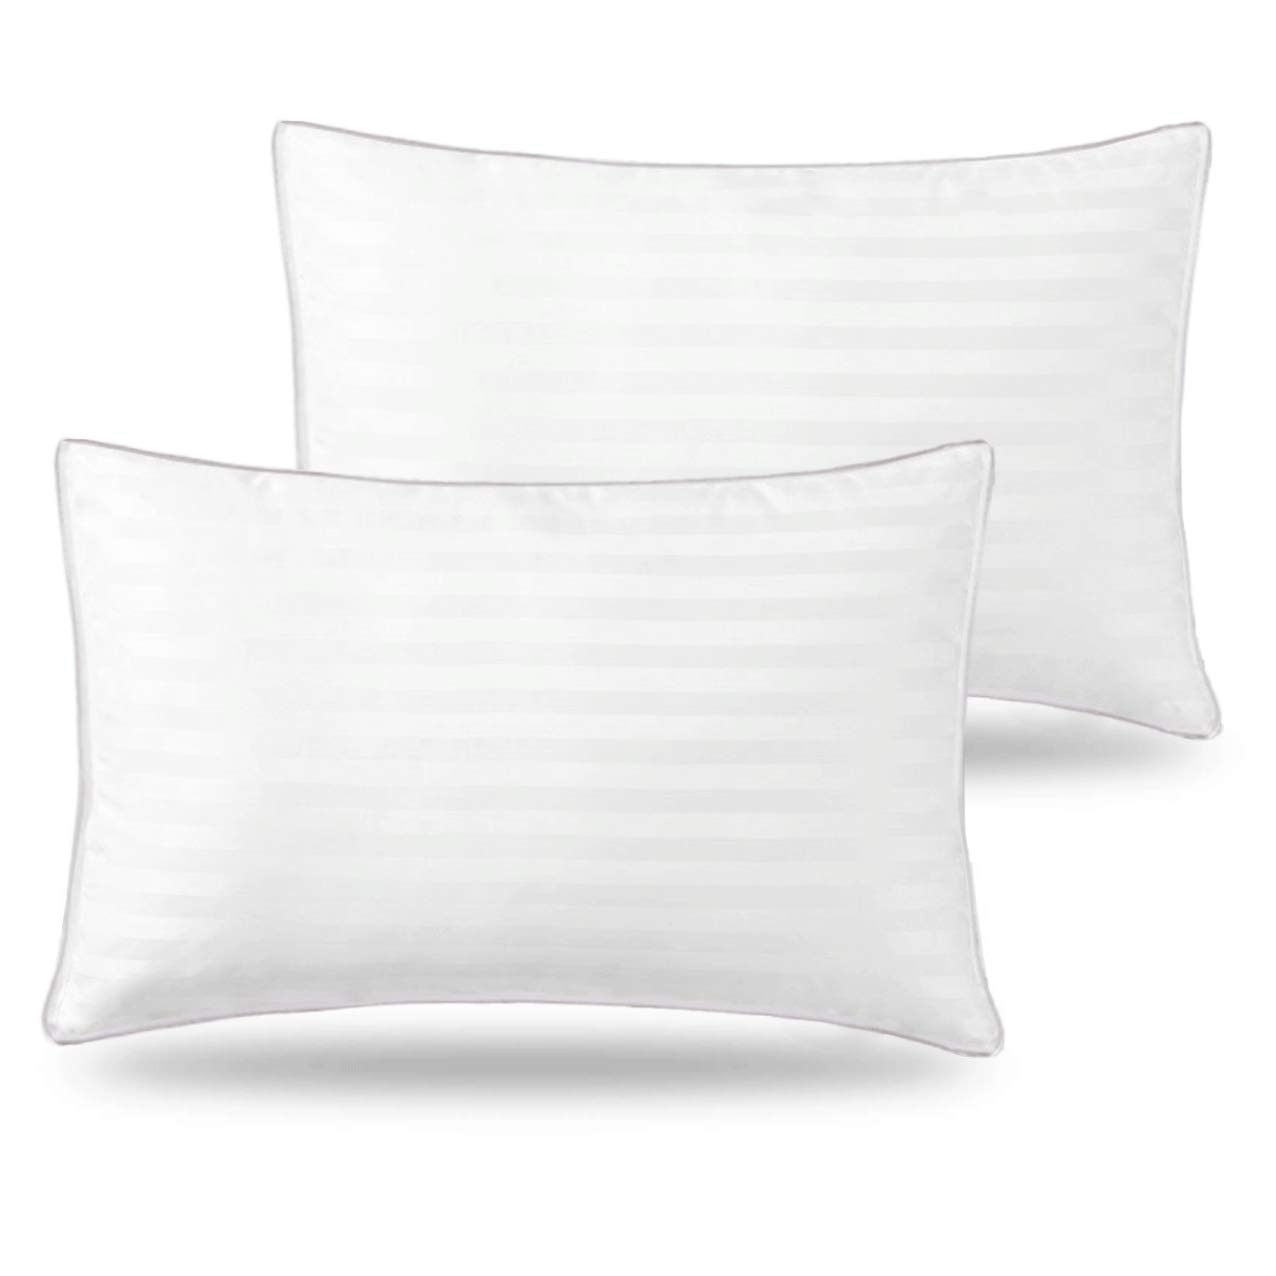 Basic Beyond Down Alternative Bed Pillow - 2 Pack Hotel Collection Hypoallergenic Super Soft Firm Pillow for Sleeping with Bamboo Materials Fill, Queen Size